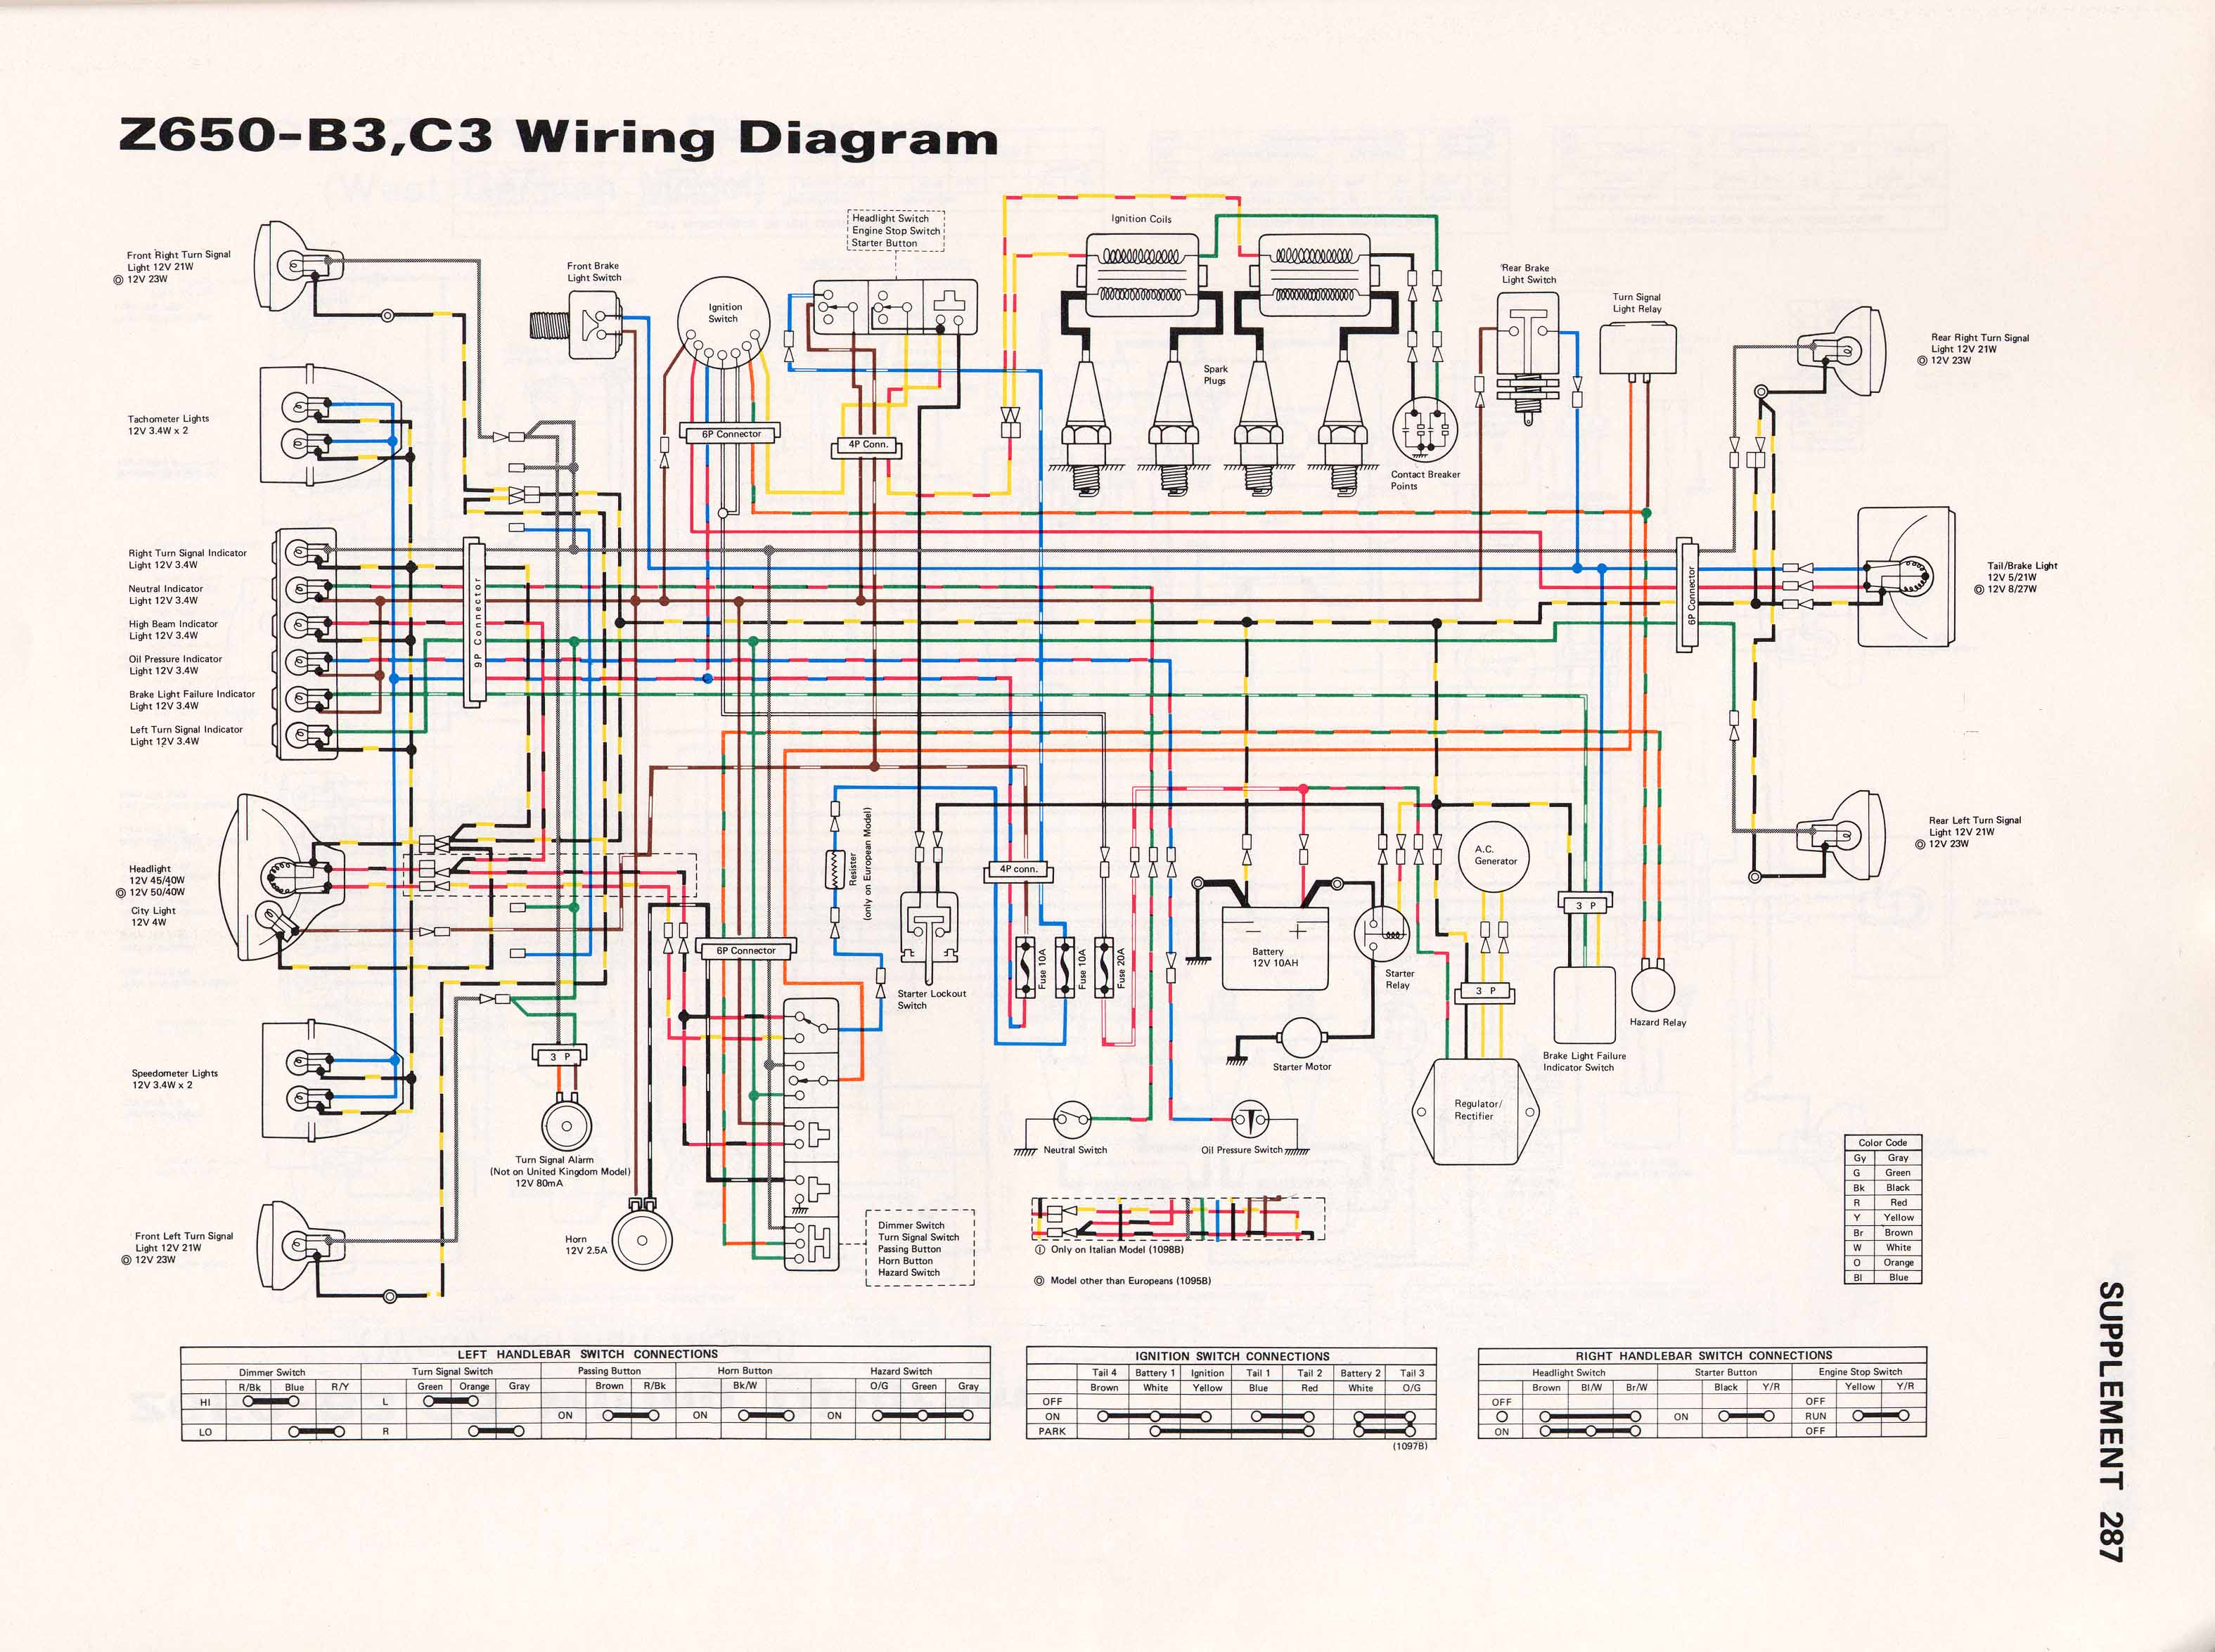 227D8 Kz650 Wiring Diagram | Digital Resources on ford 8n wiring diagram, 1960 willys l6-226 12 volt wiring diagram, 1979 jeep wiring diagram, jeep cj5 wiring-diagram, 1986 jeep wiring diagram, simple chopper wiring diagram, 86 cj7 distributor wiring diagram, 2014 jeep wrangler wiring diagram, 1984 jeep cj wiring diagram, 2009 dodge 4500 pto wiring diagram,